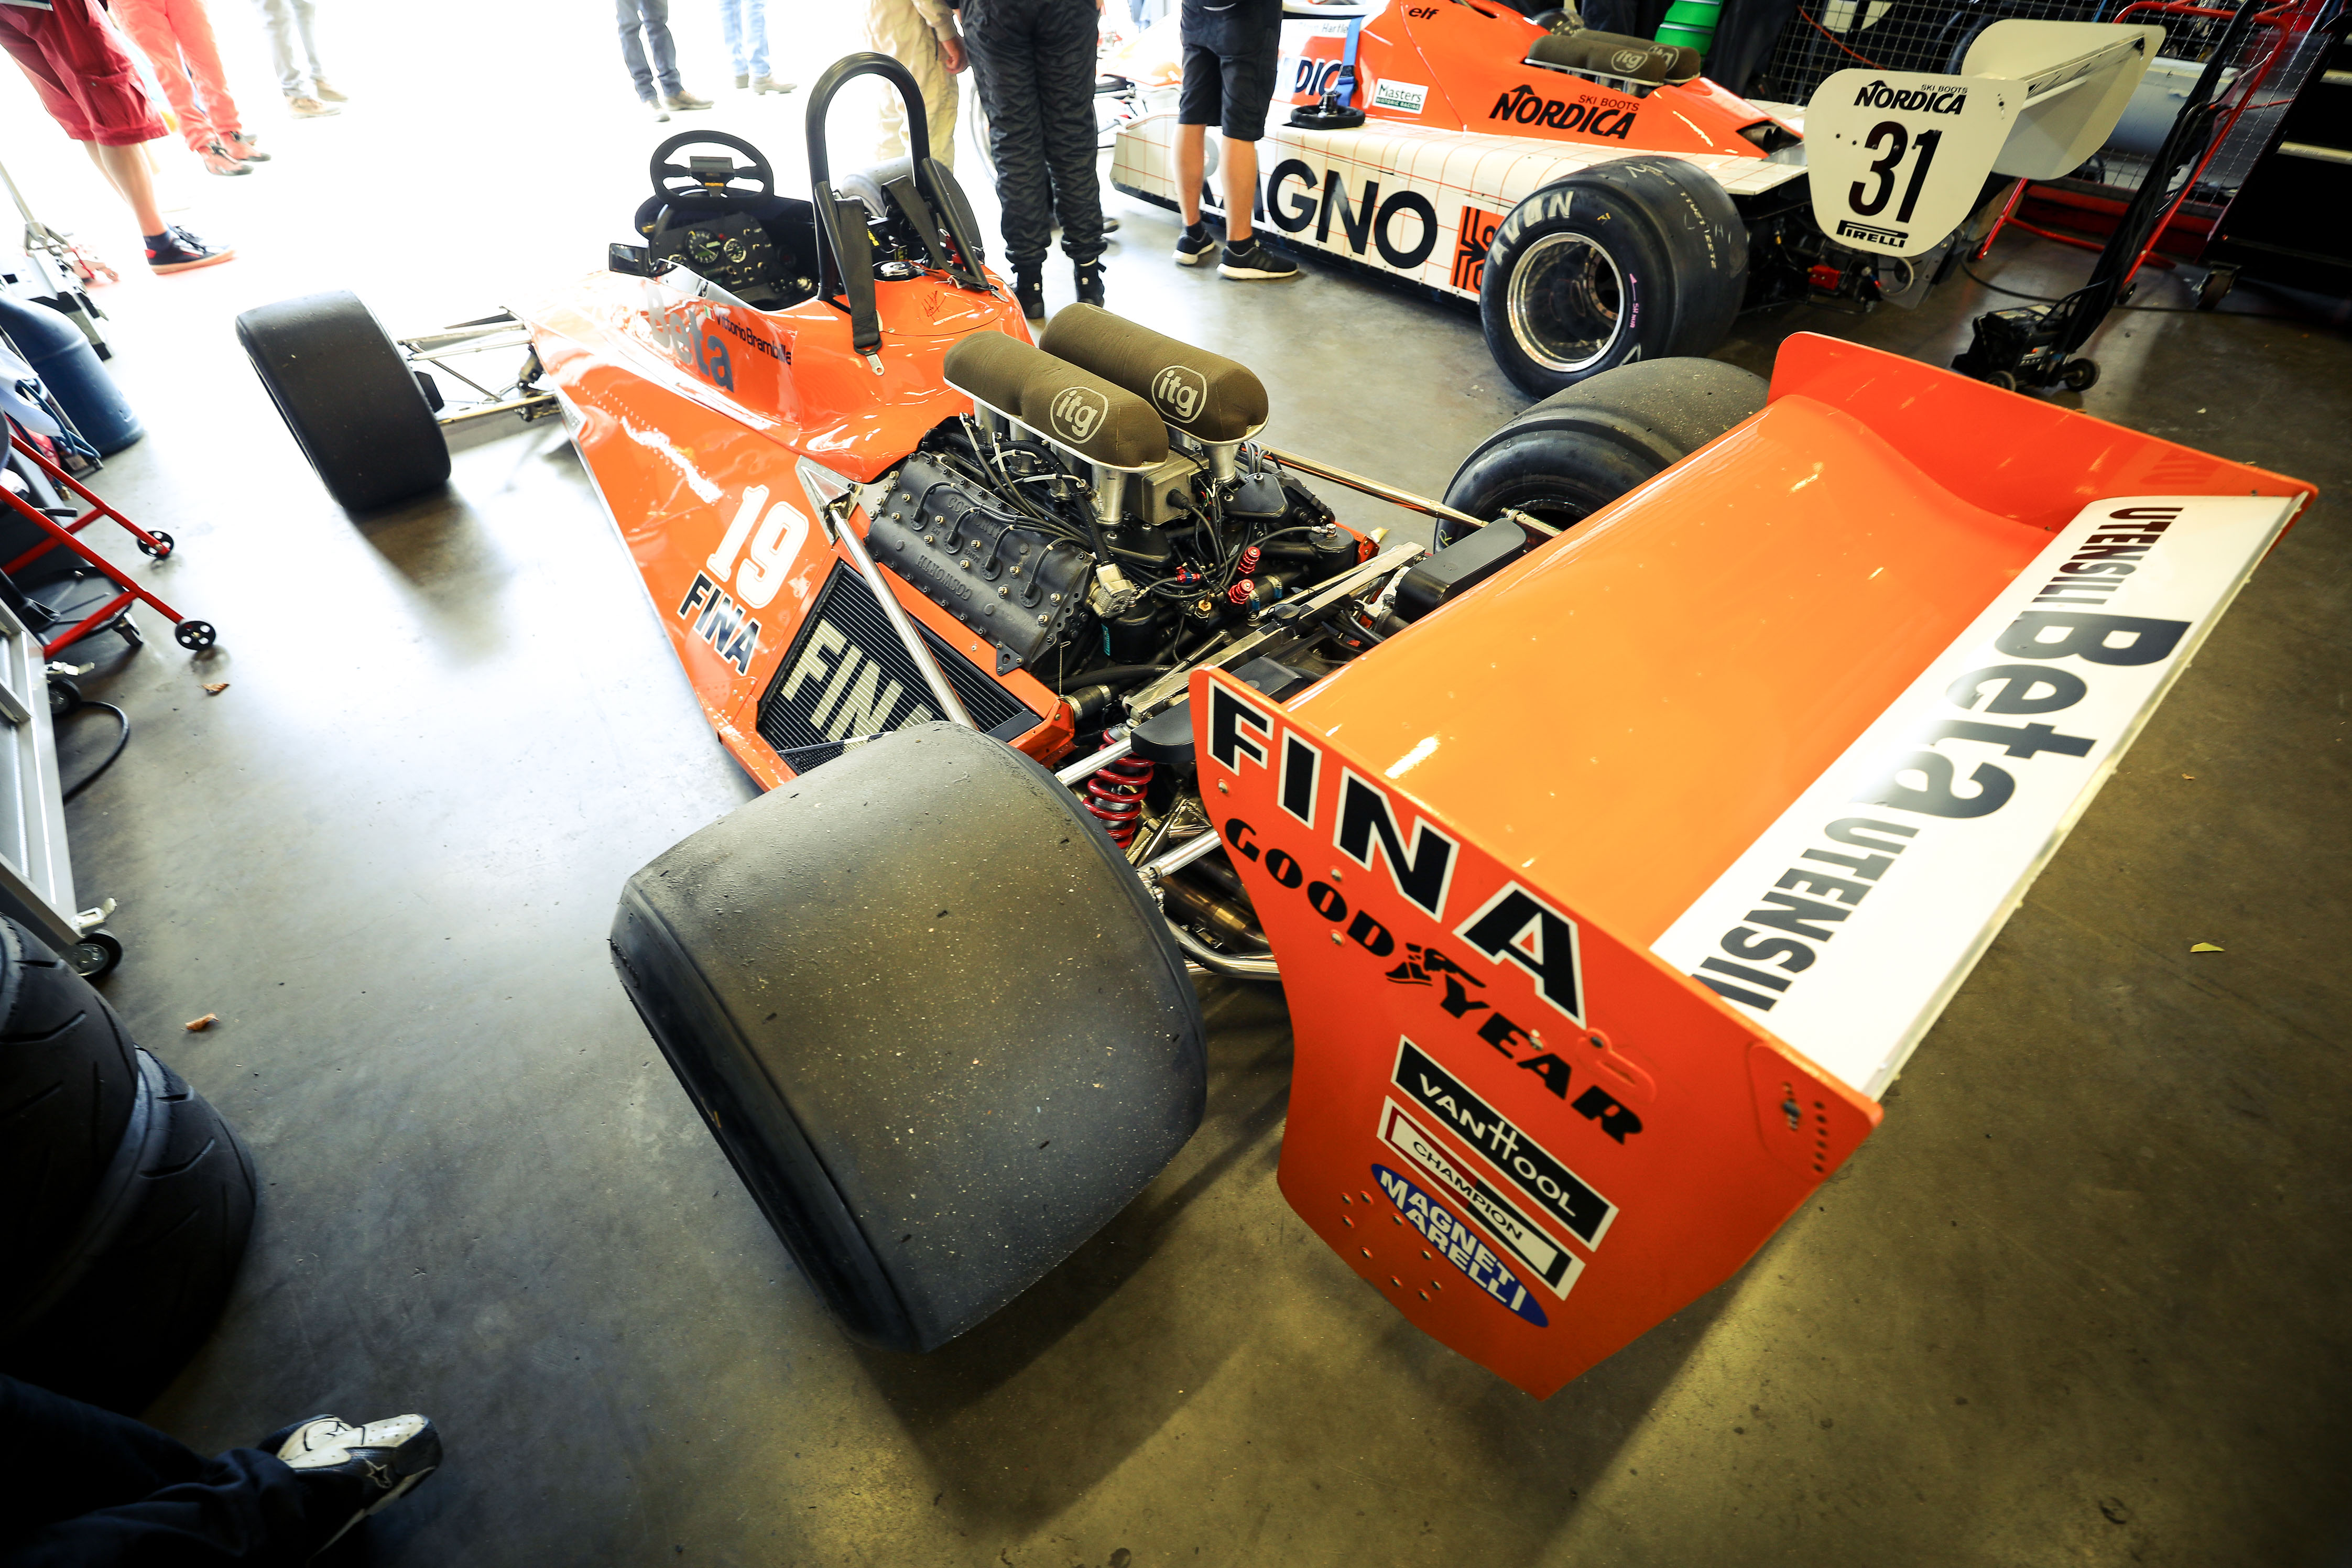 FIA Masters Historic Formula One field had two race of the Oldtimer Grand Prix